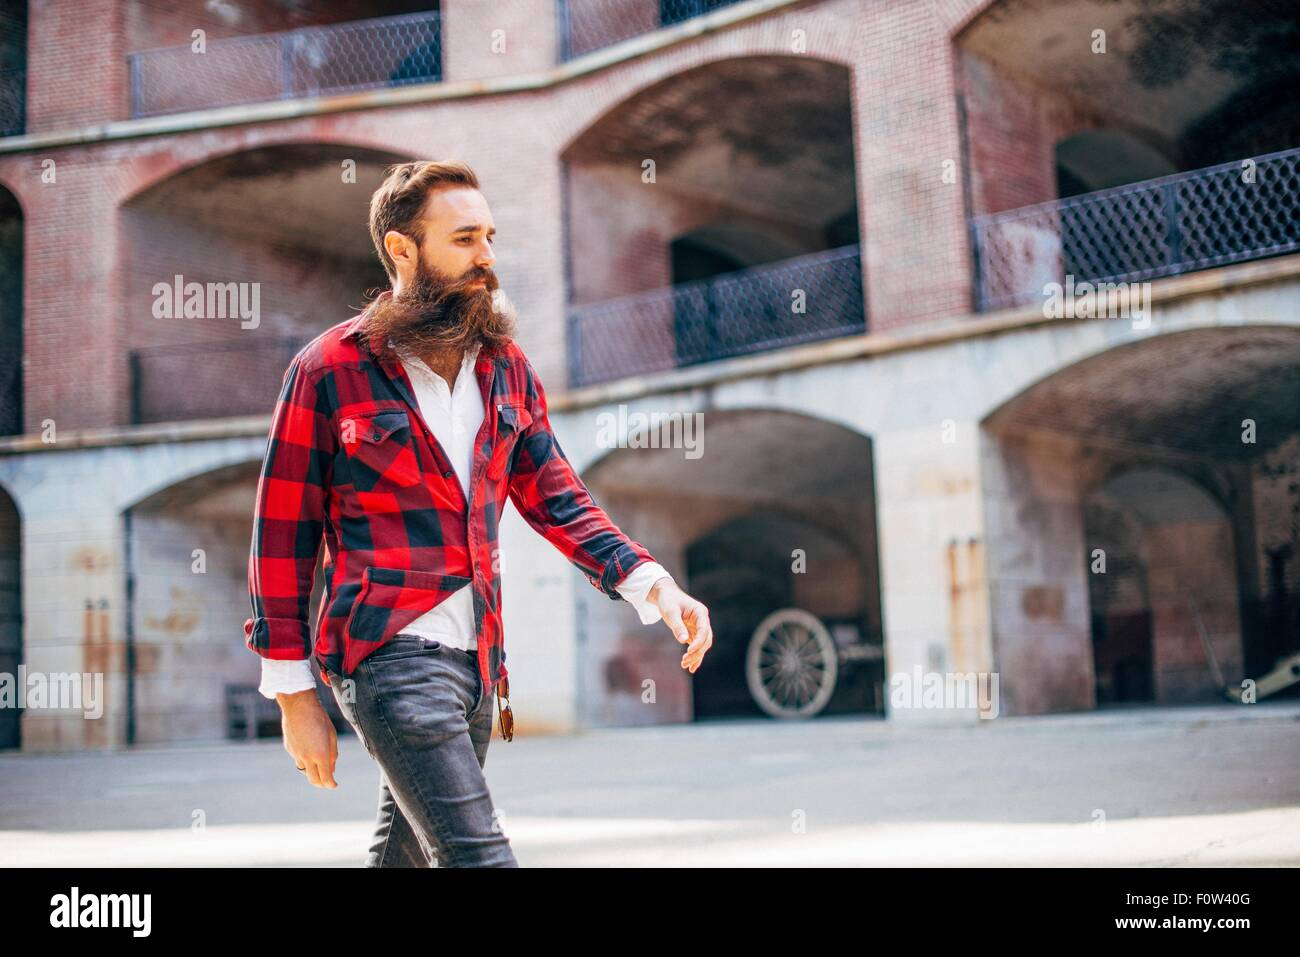 Man with beard walking - Stock Image